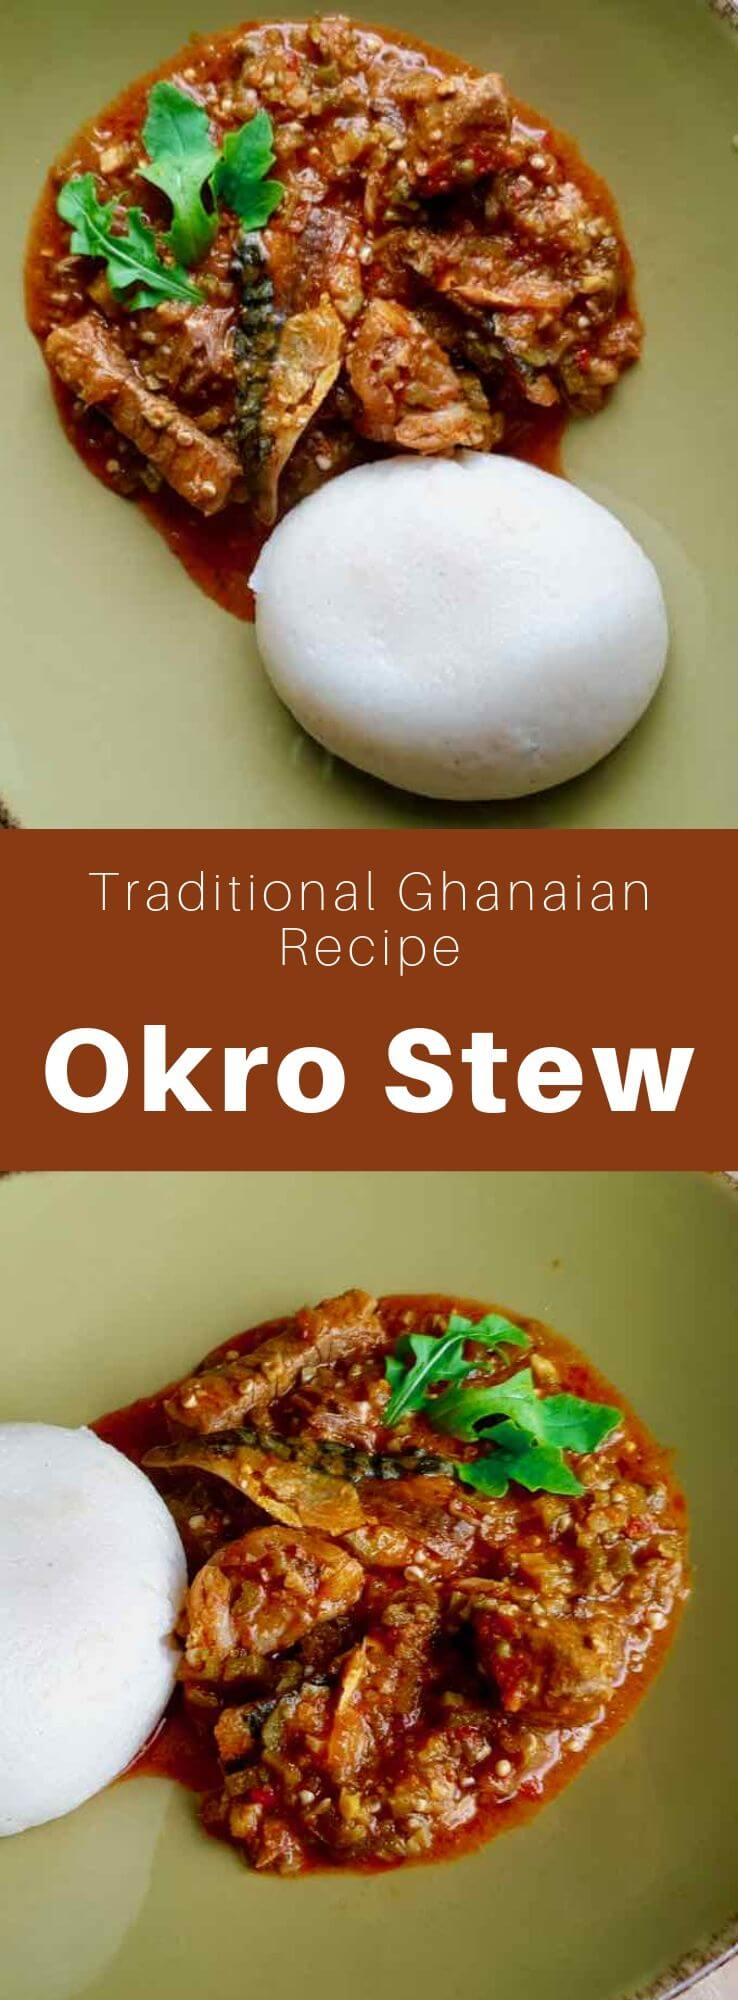 As one of Ghana's national dishes, okro stew is prepared with tomatoes, red palm oil, onions, tomatoes, spices and finely chopped okra. #Ghana #GhanaianCuisine #GhanaianFood #GhanaianRecipe #AfricanCuisine #AfricanFood #AfricanRecipe #WorldCuisine #196flavors